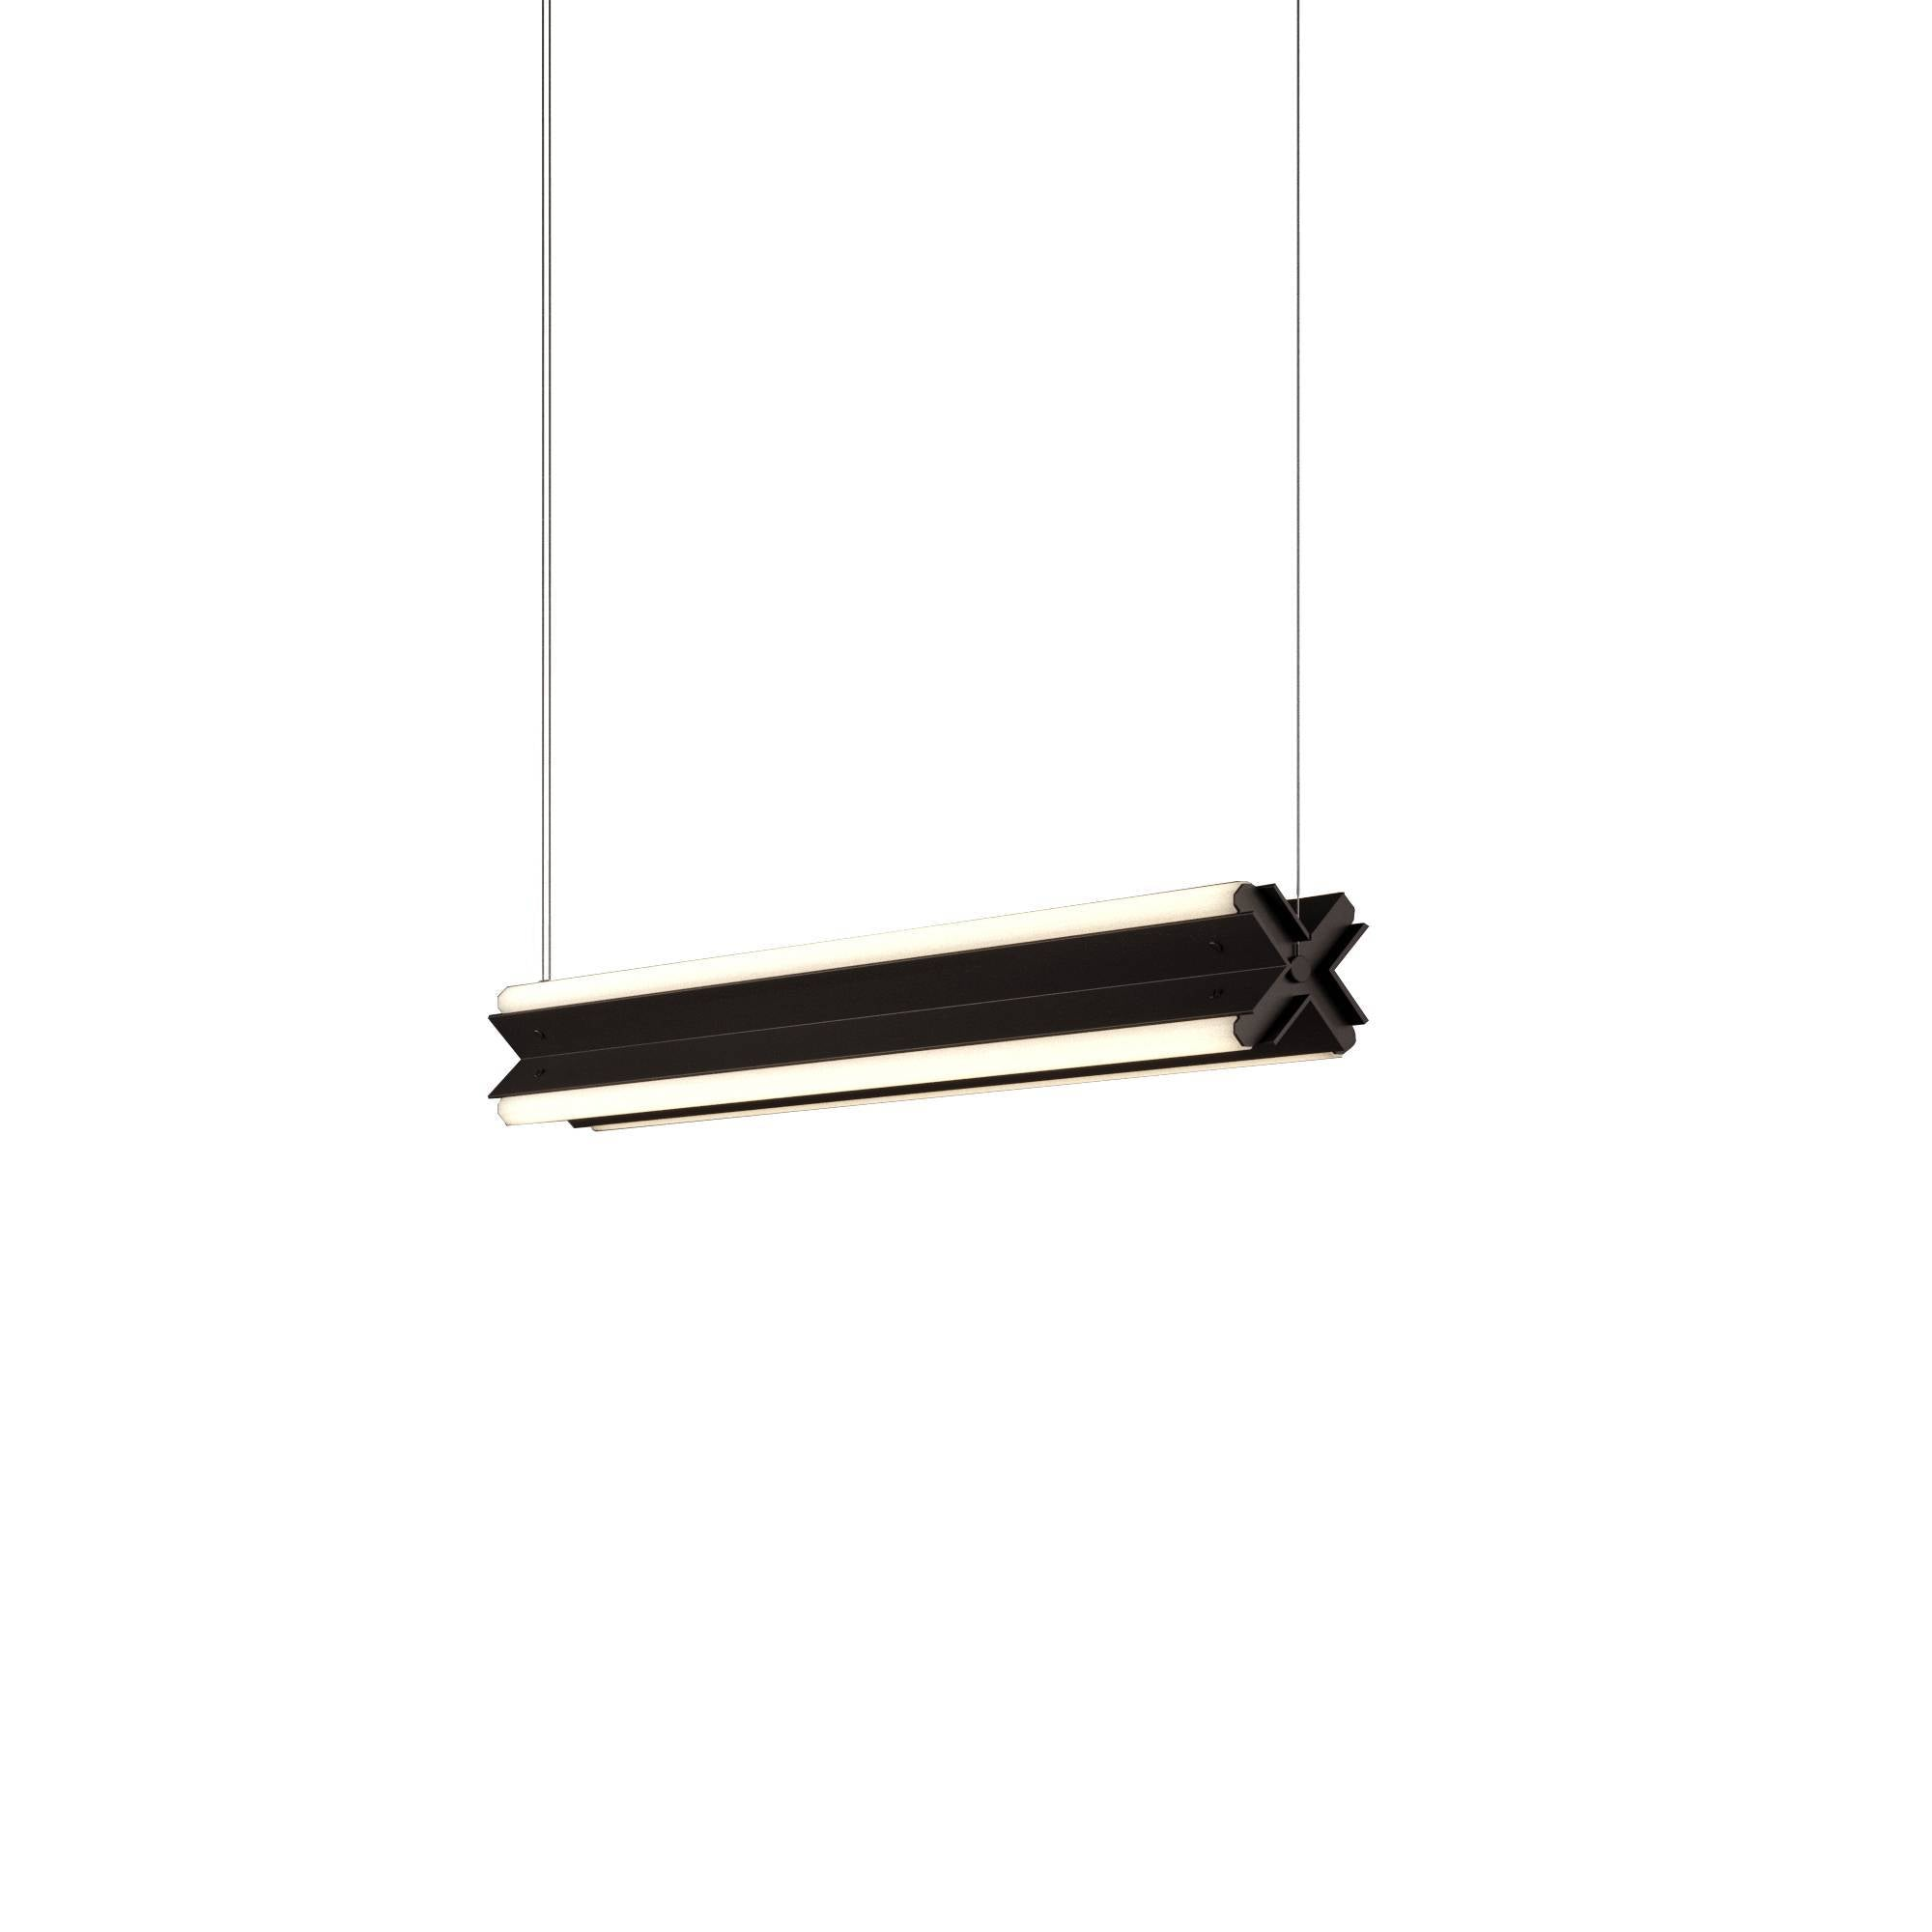 "Axis X Suspension Light: 36"" + Black Oxide + Horizontal"